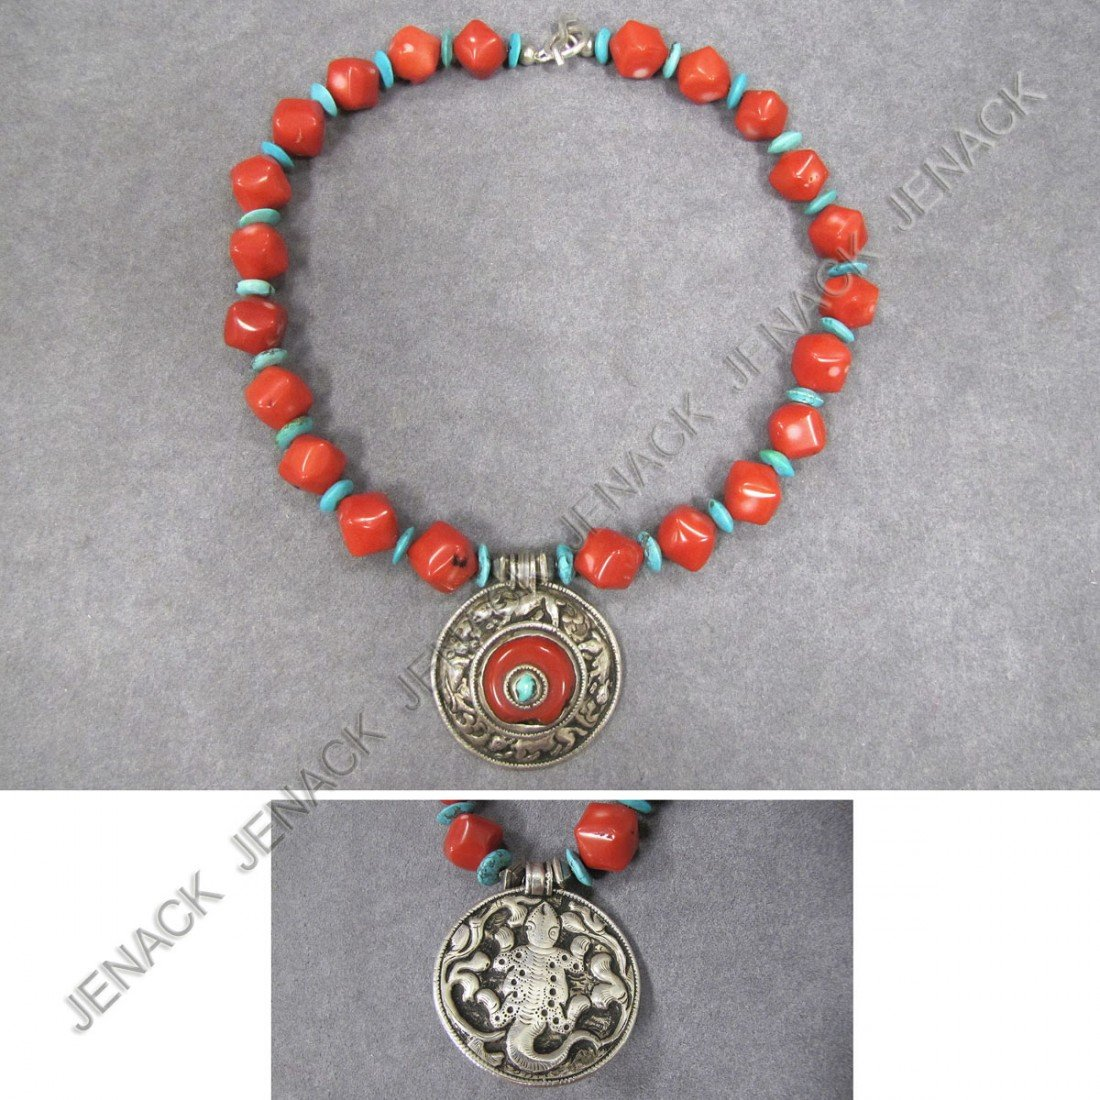 21: MODERN DESIGN RED CORAL & TURQUOISE BEAD NECKLACE